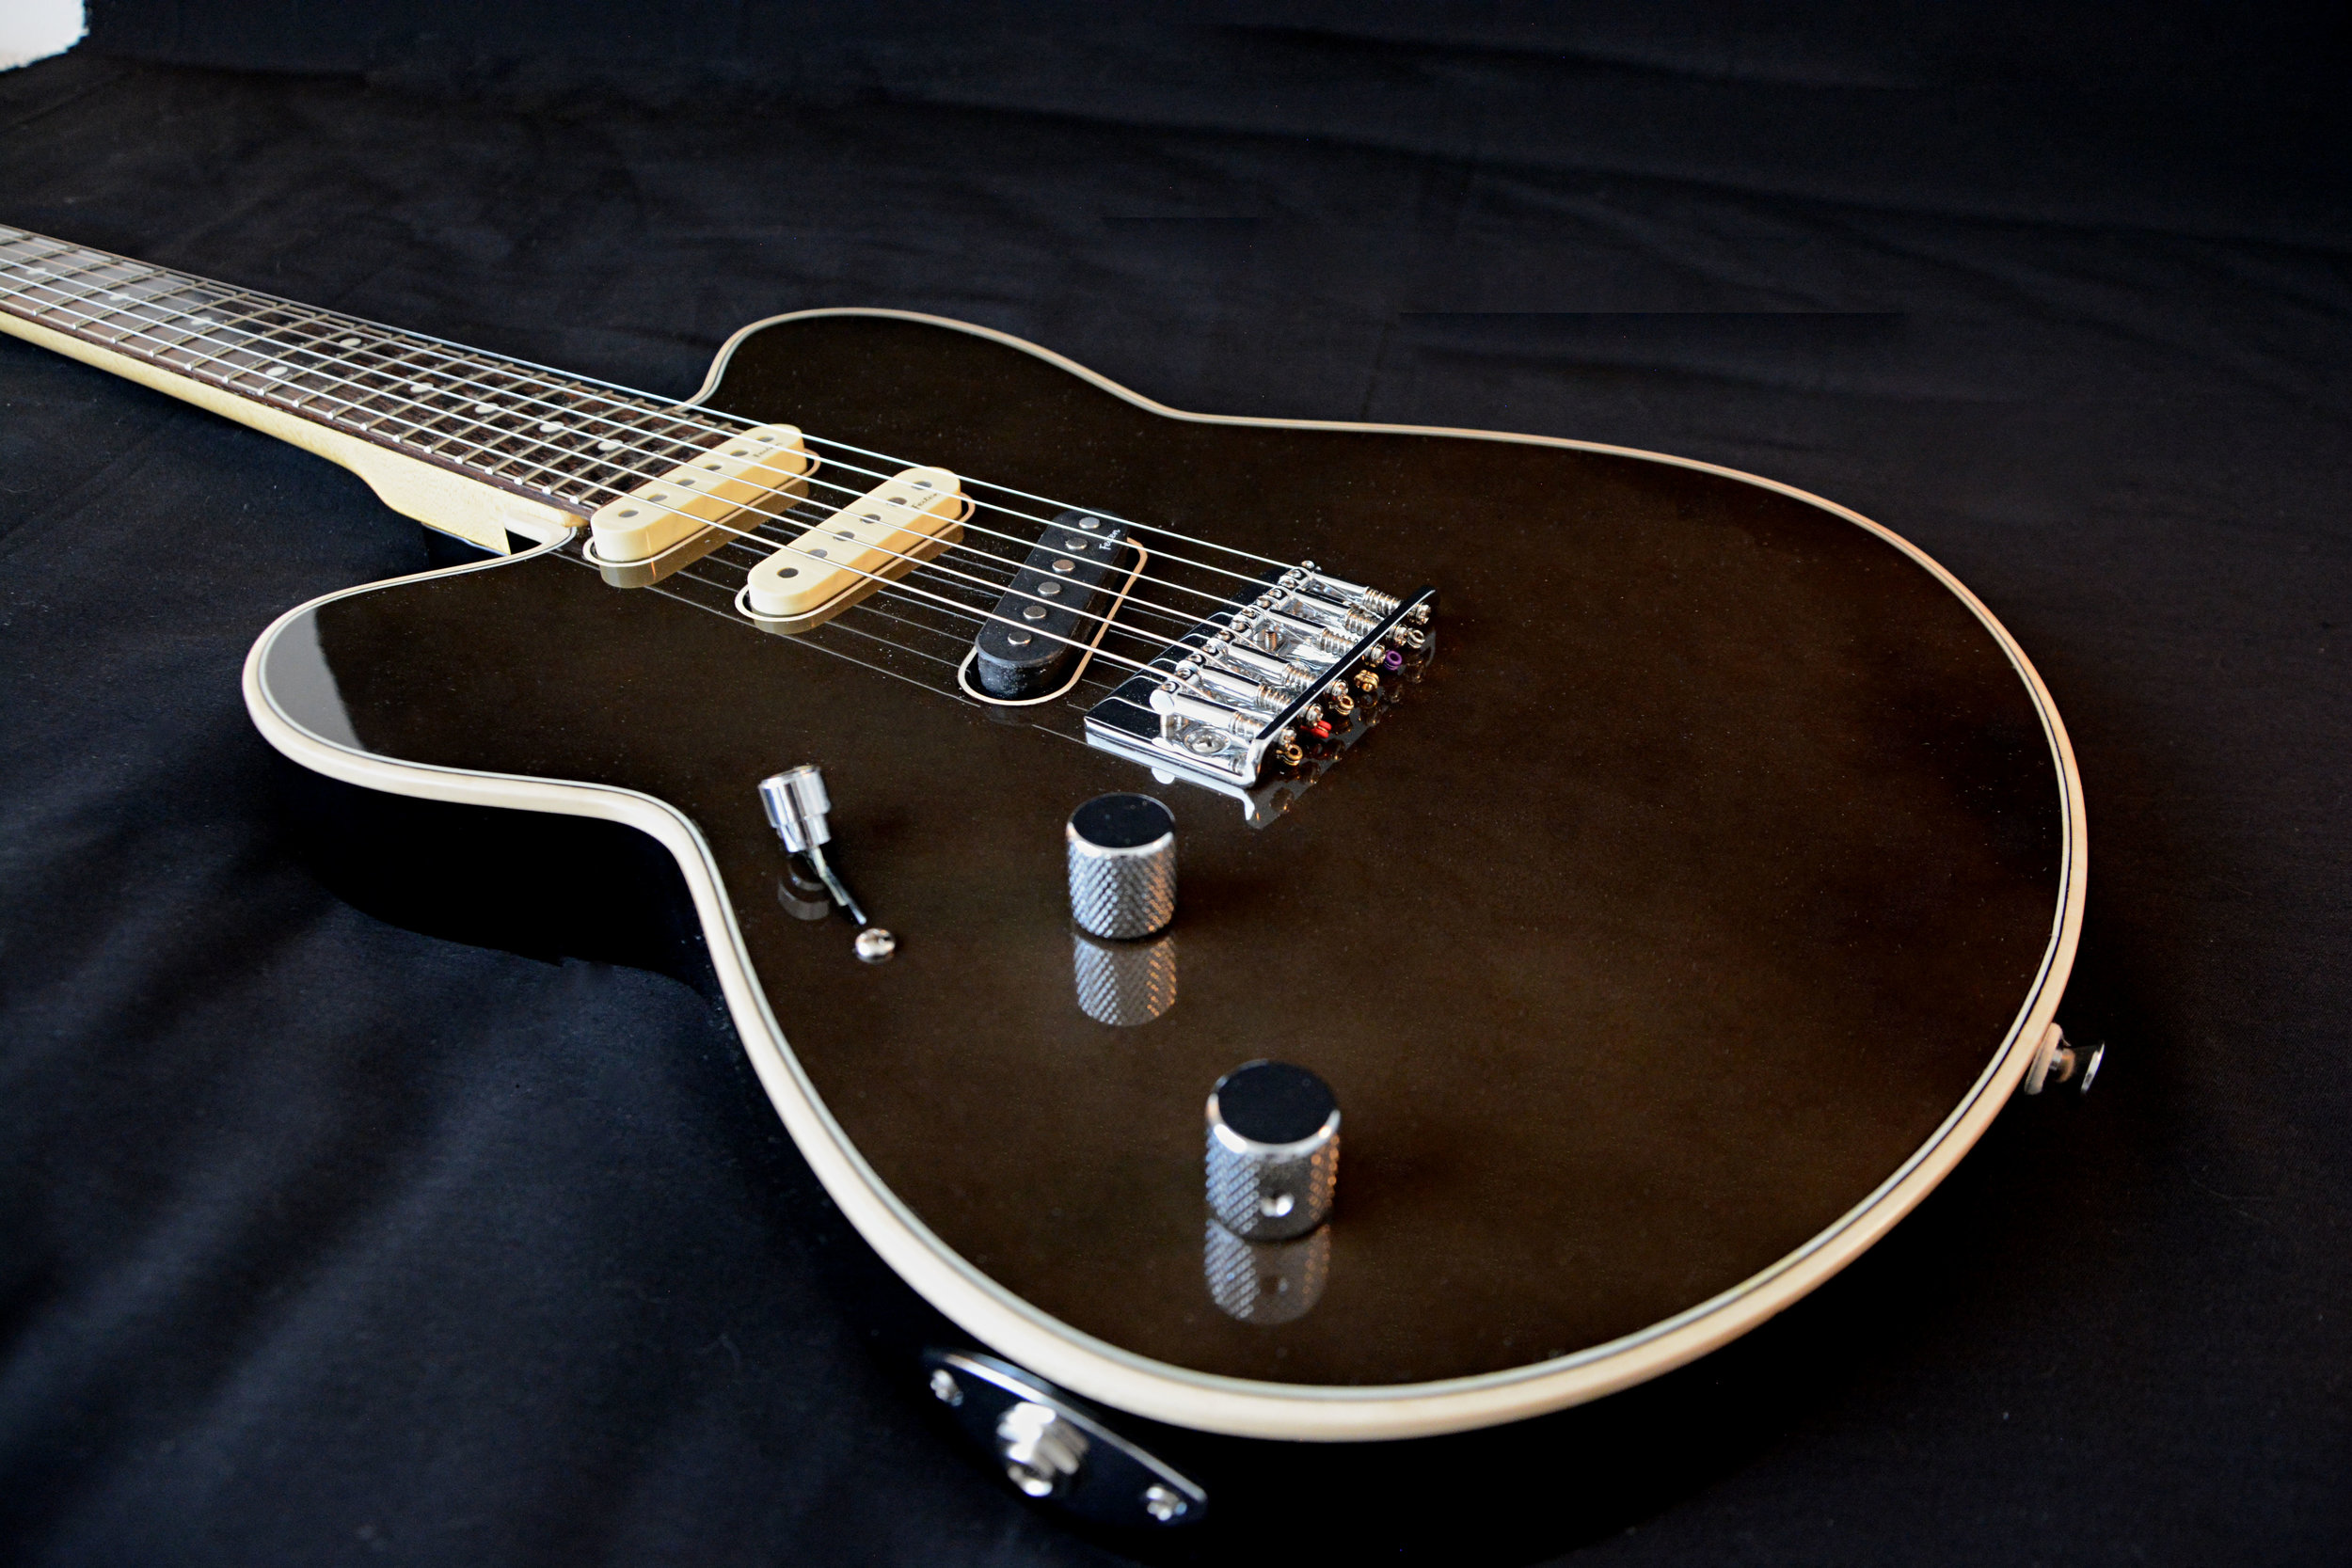 Neal Faison's Lefty Futura top view 1.jpg